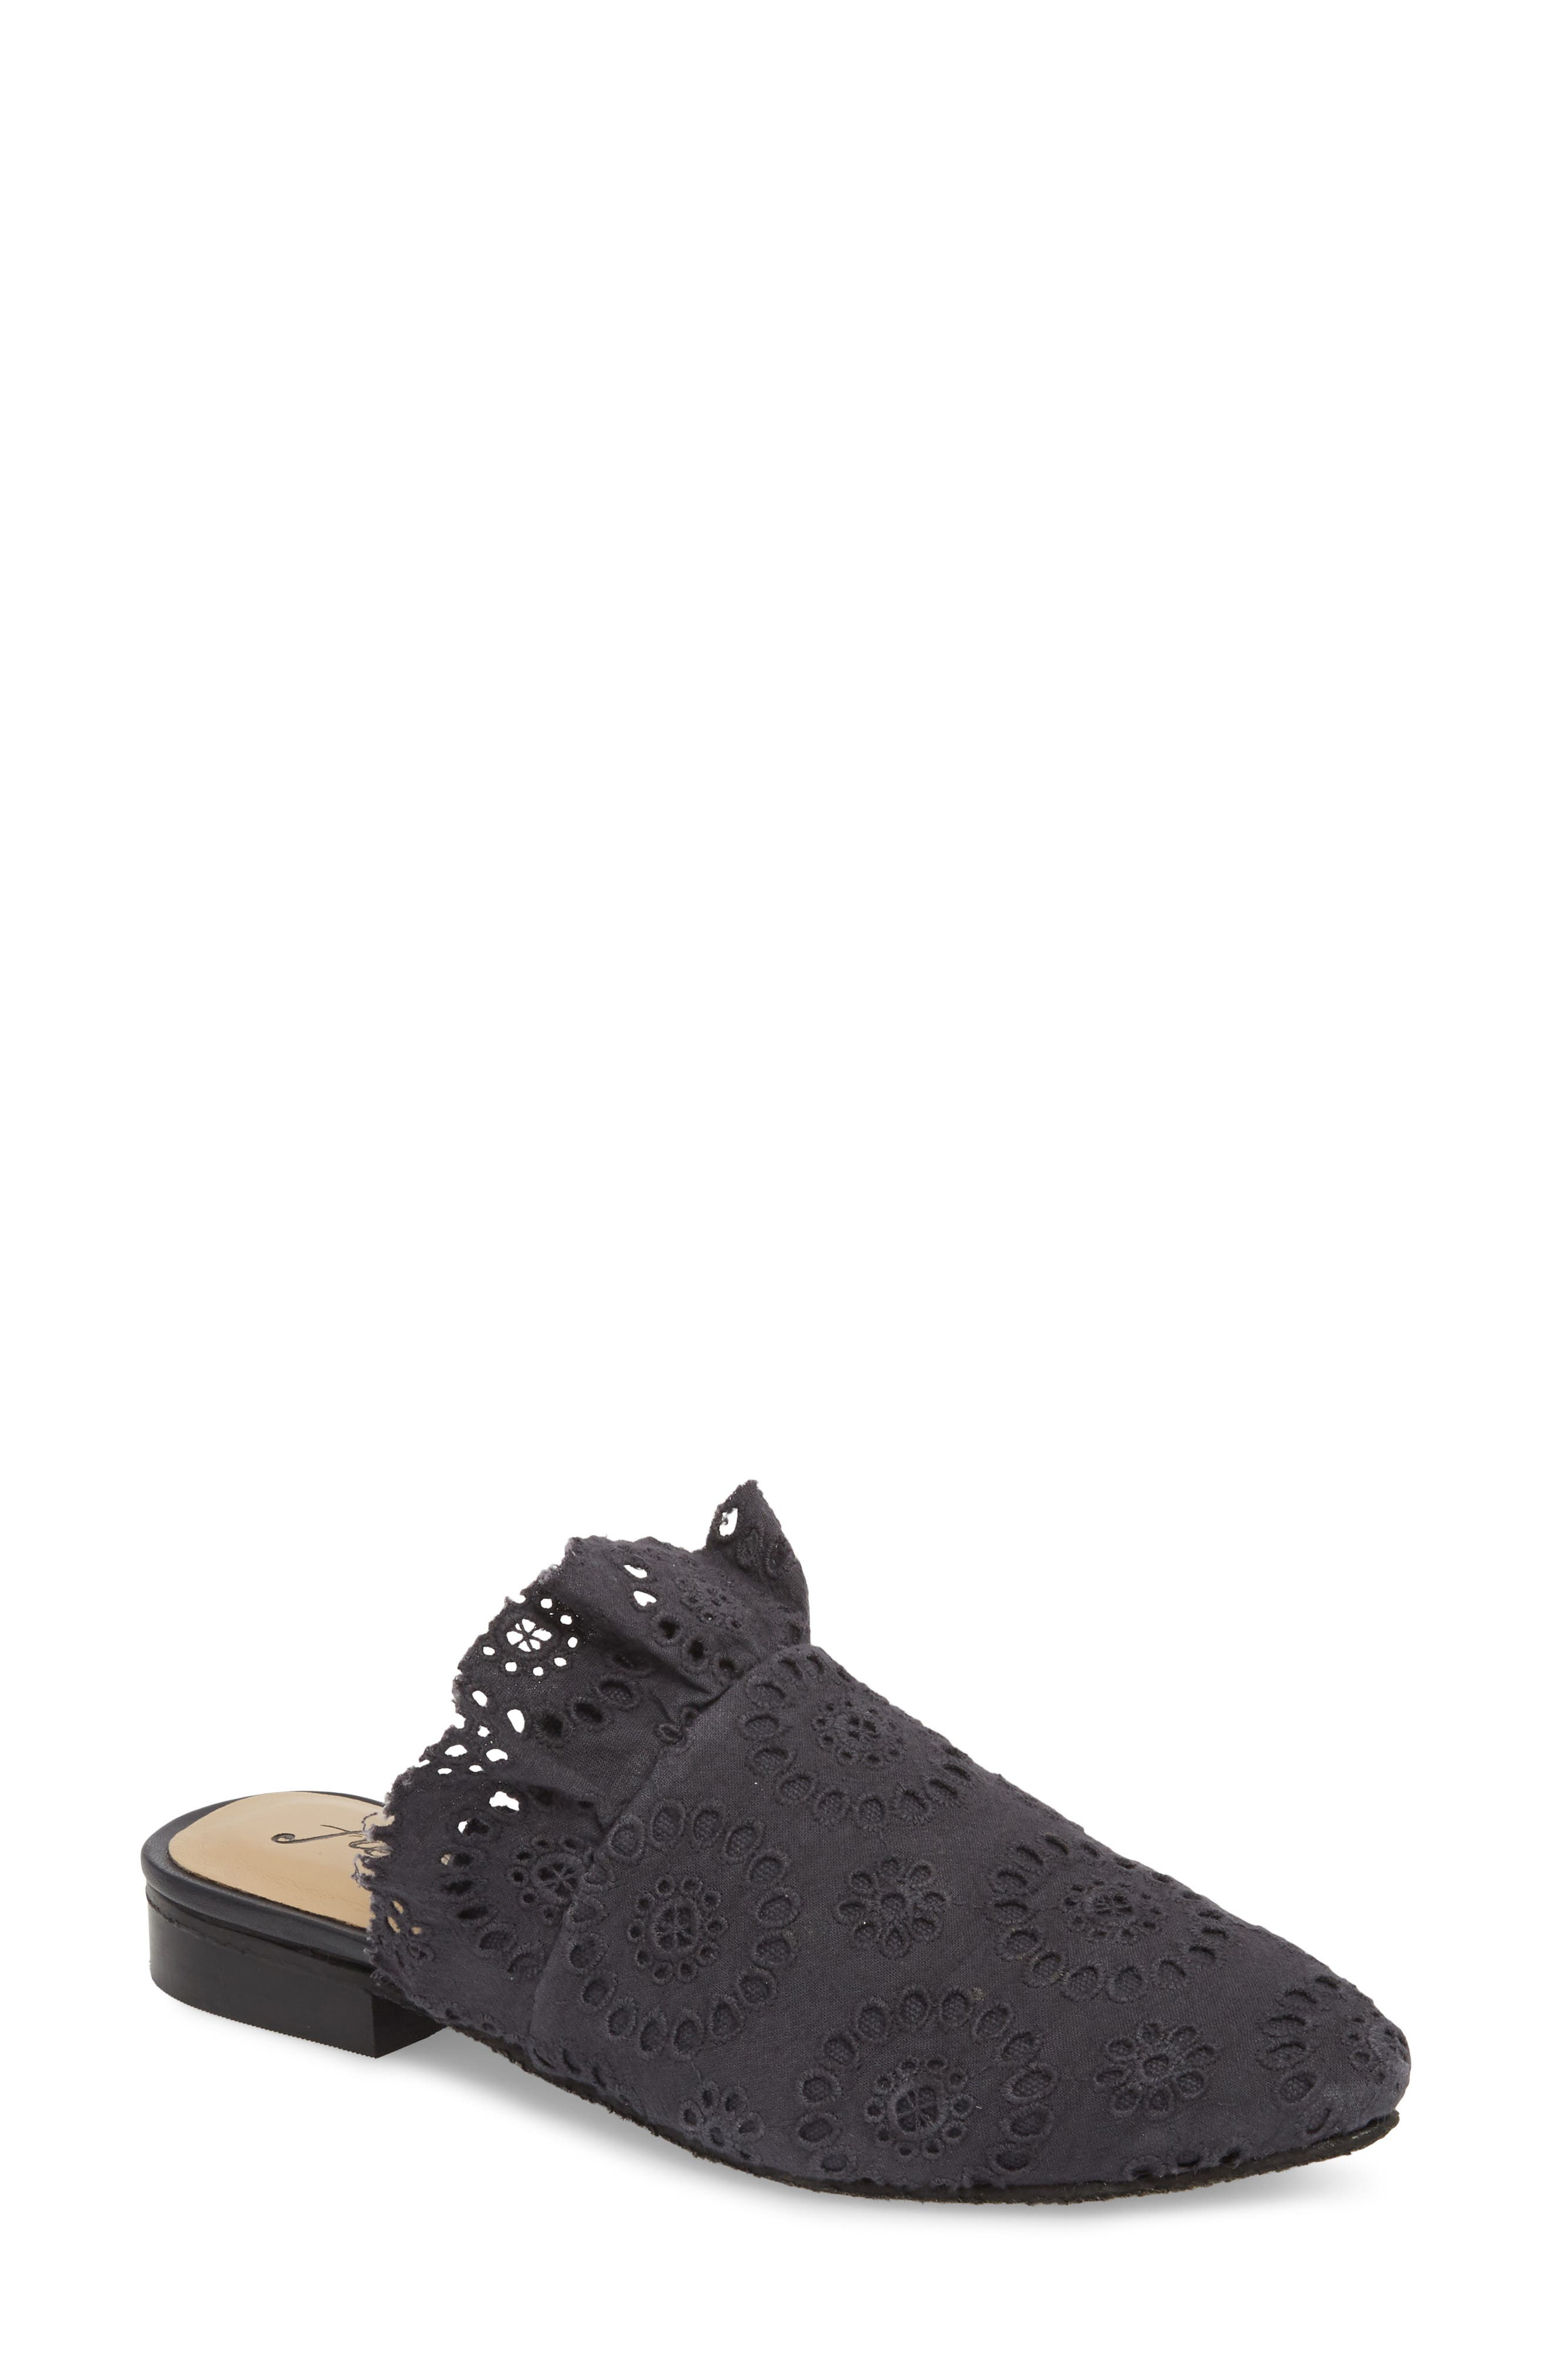 Eyelet Sienna Mule,                             Main thumbnail 1, color,                             BLACK